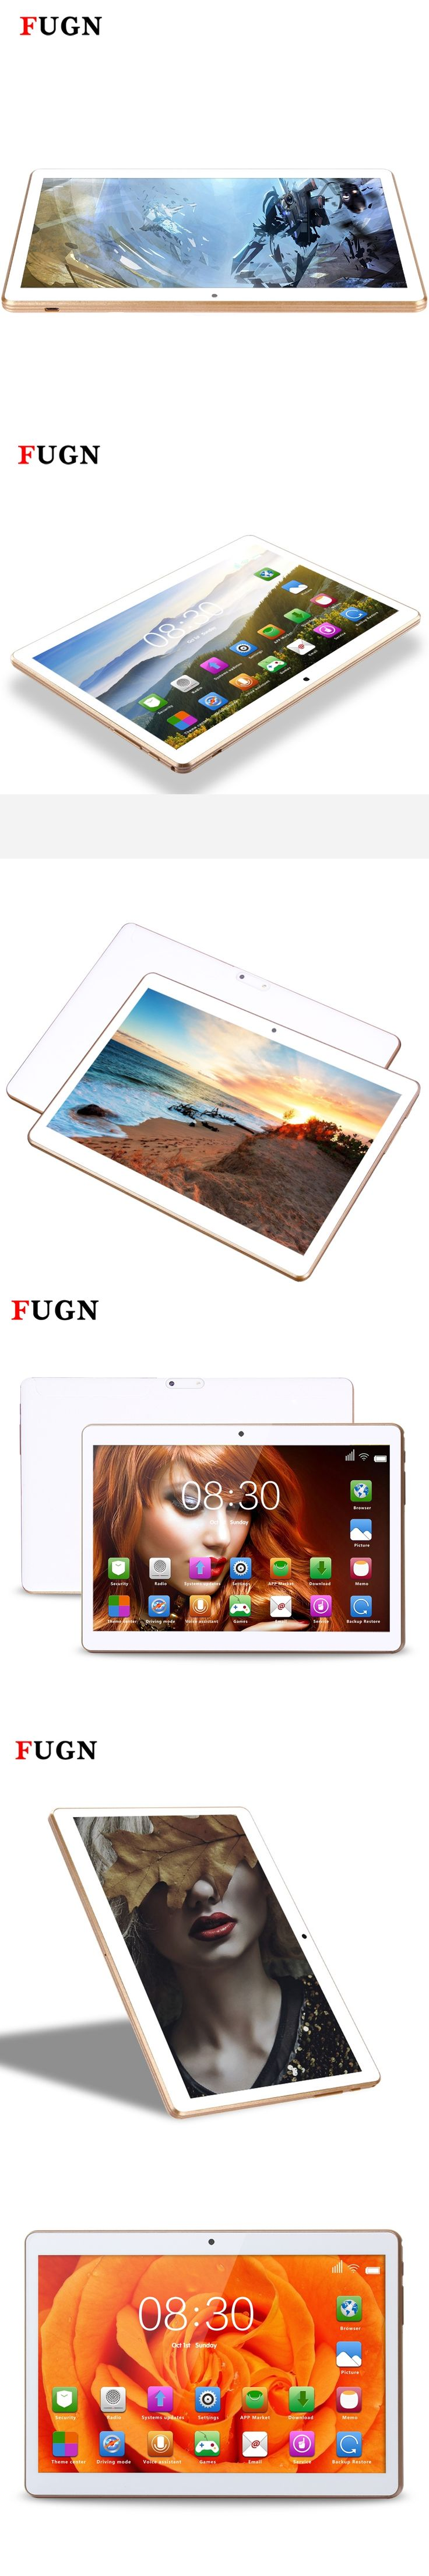 2017 FUGN Tablet 10 inch Original 3G SmartPhone Tablet Wifi 6.0 Android Octa Core pc Tablet GPS 4G+64G with Keyboard Pen 8 9.7''